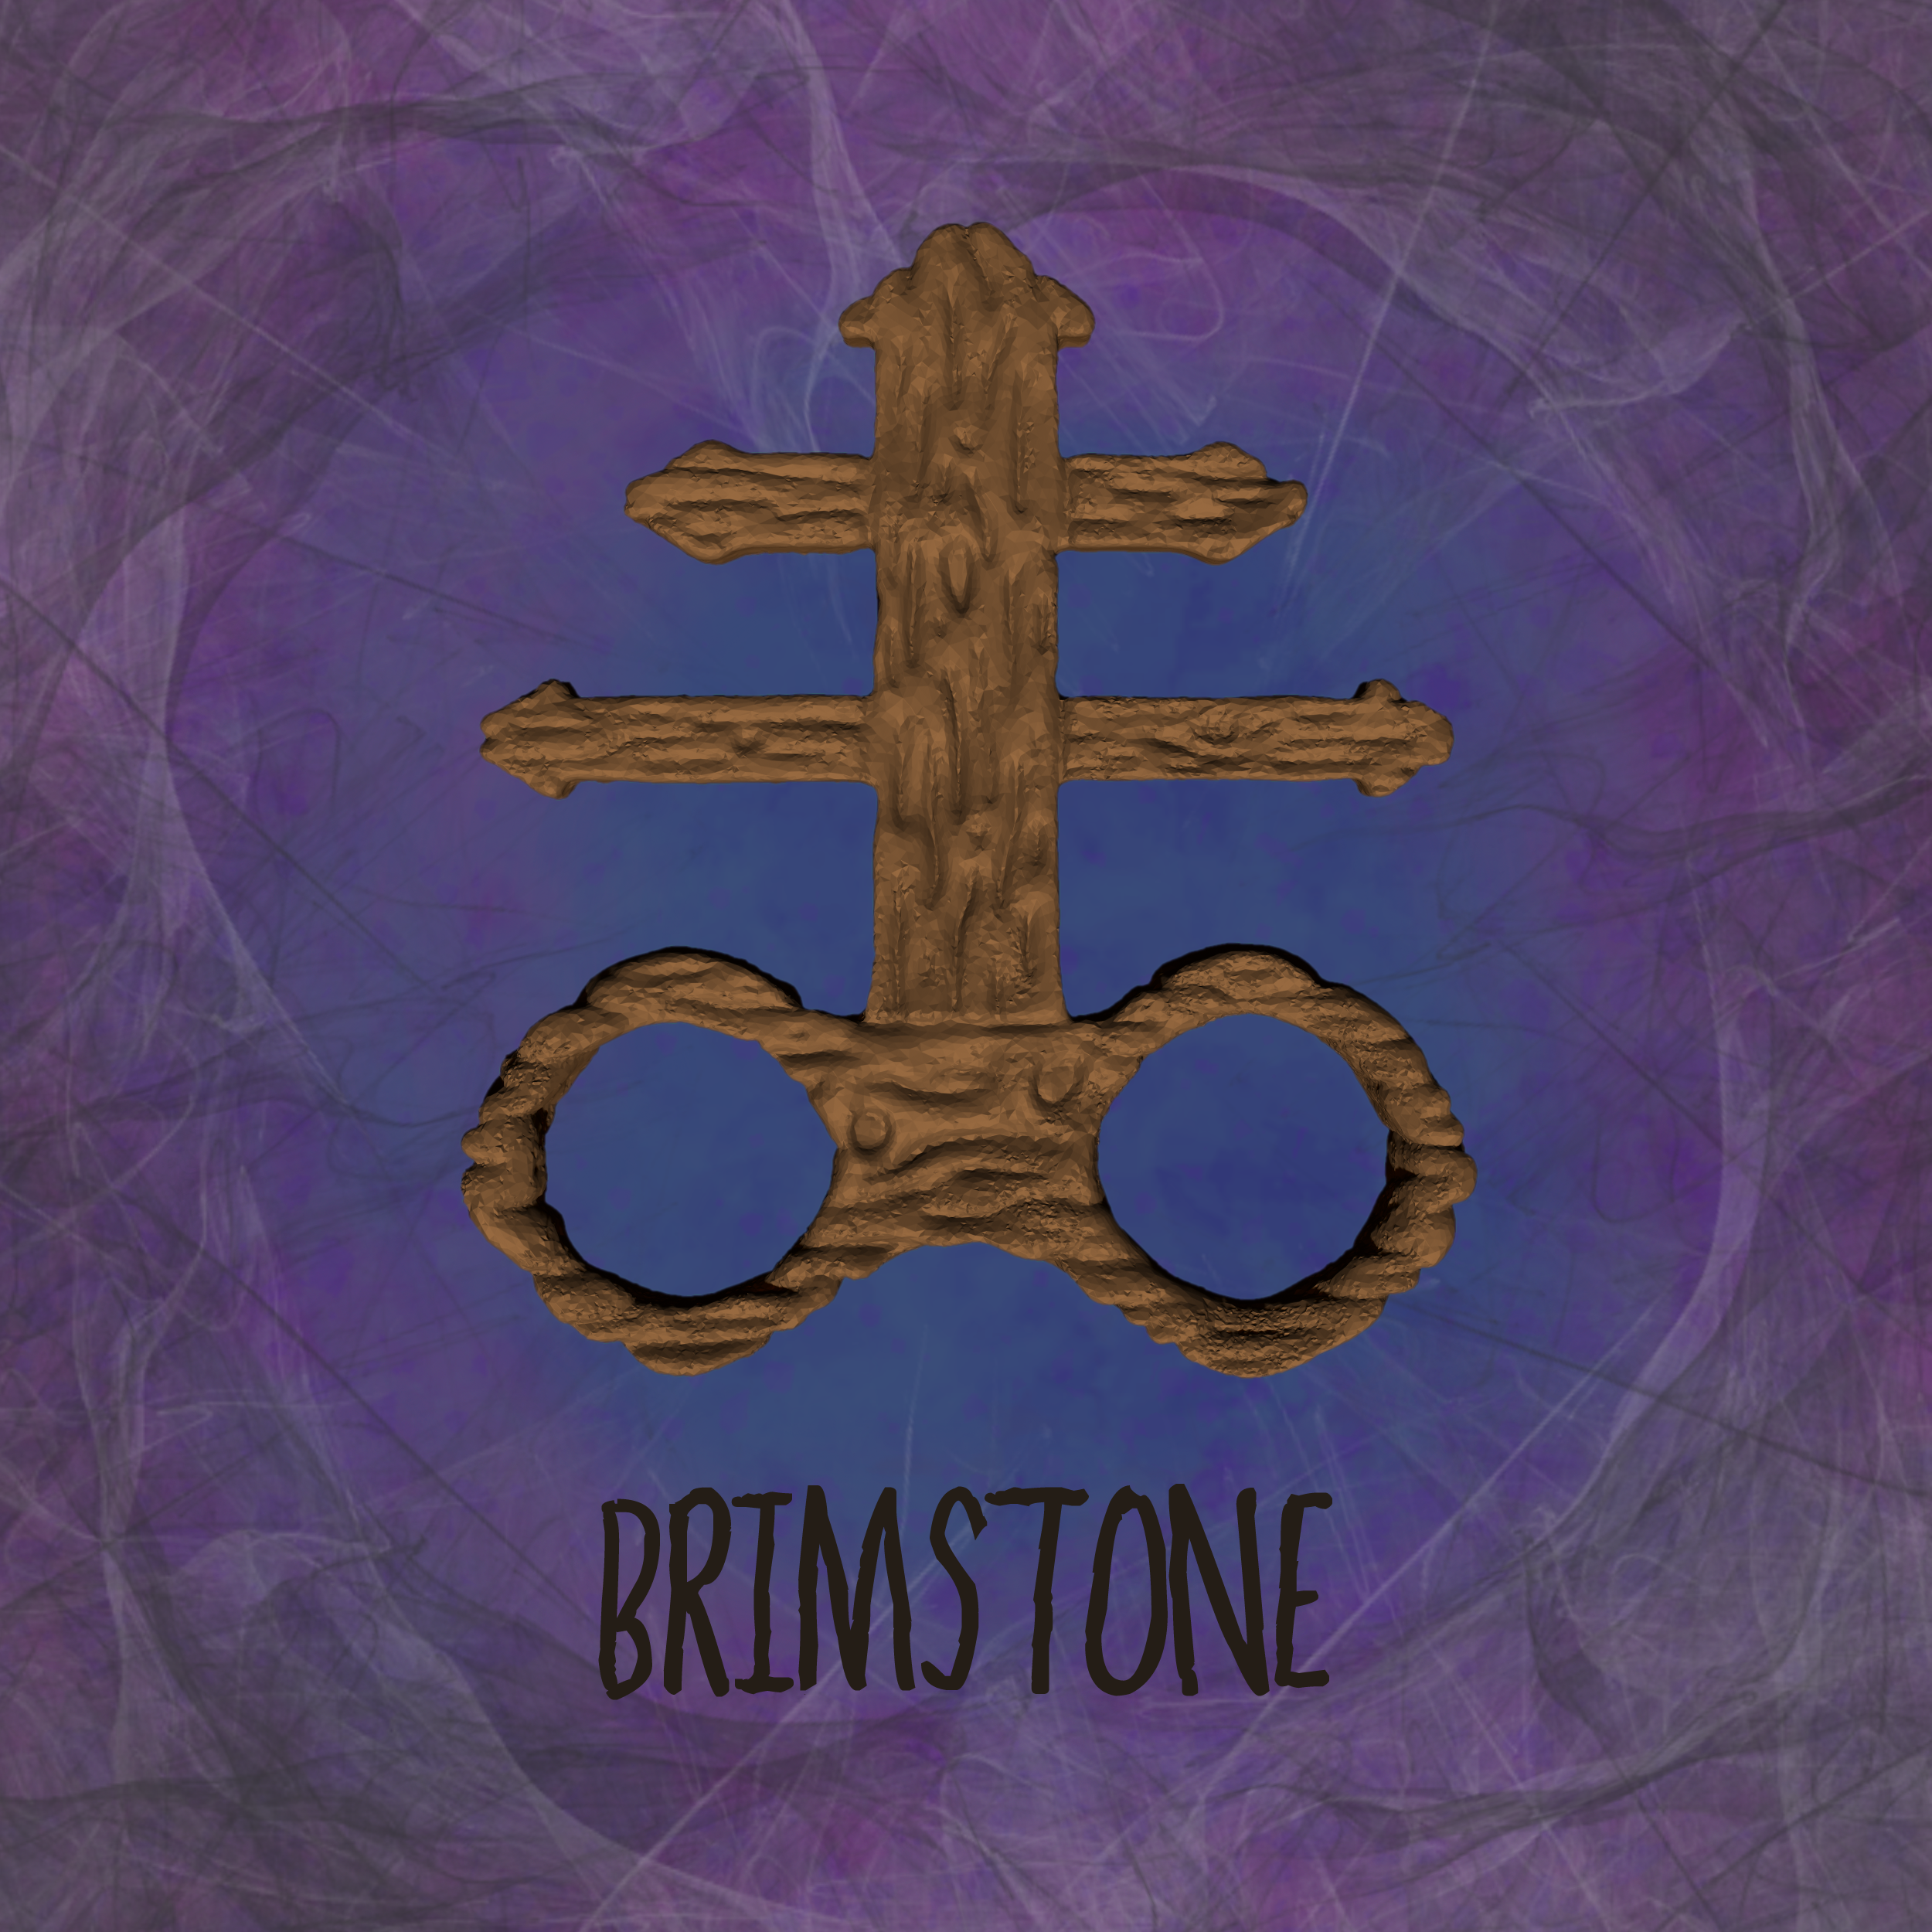 BrimstoneIcon_web.png